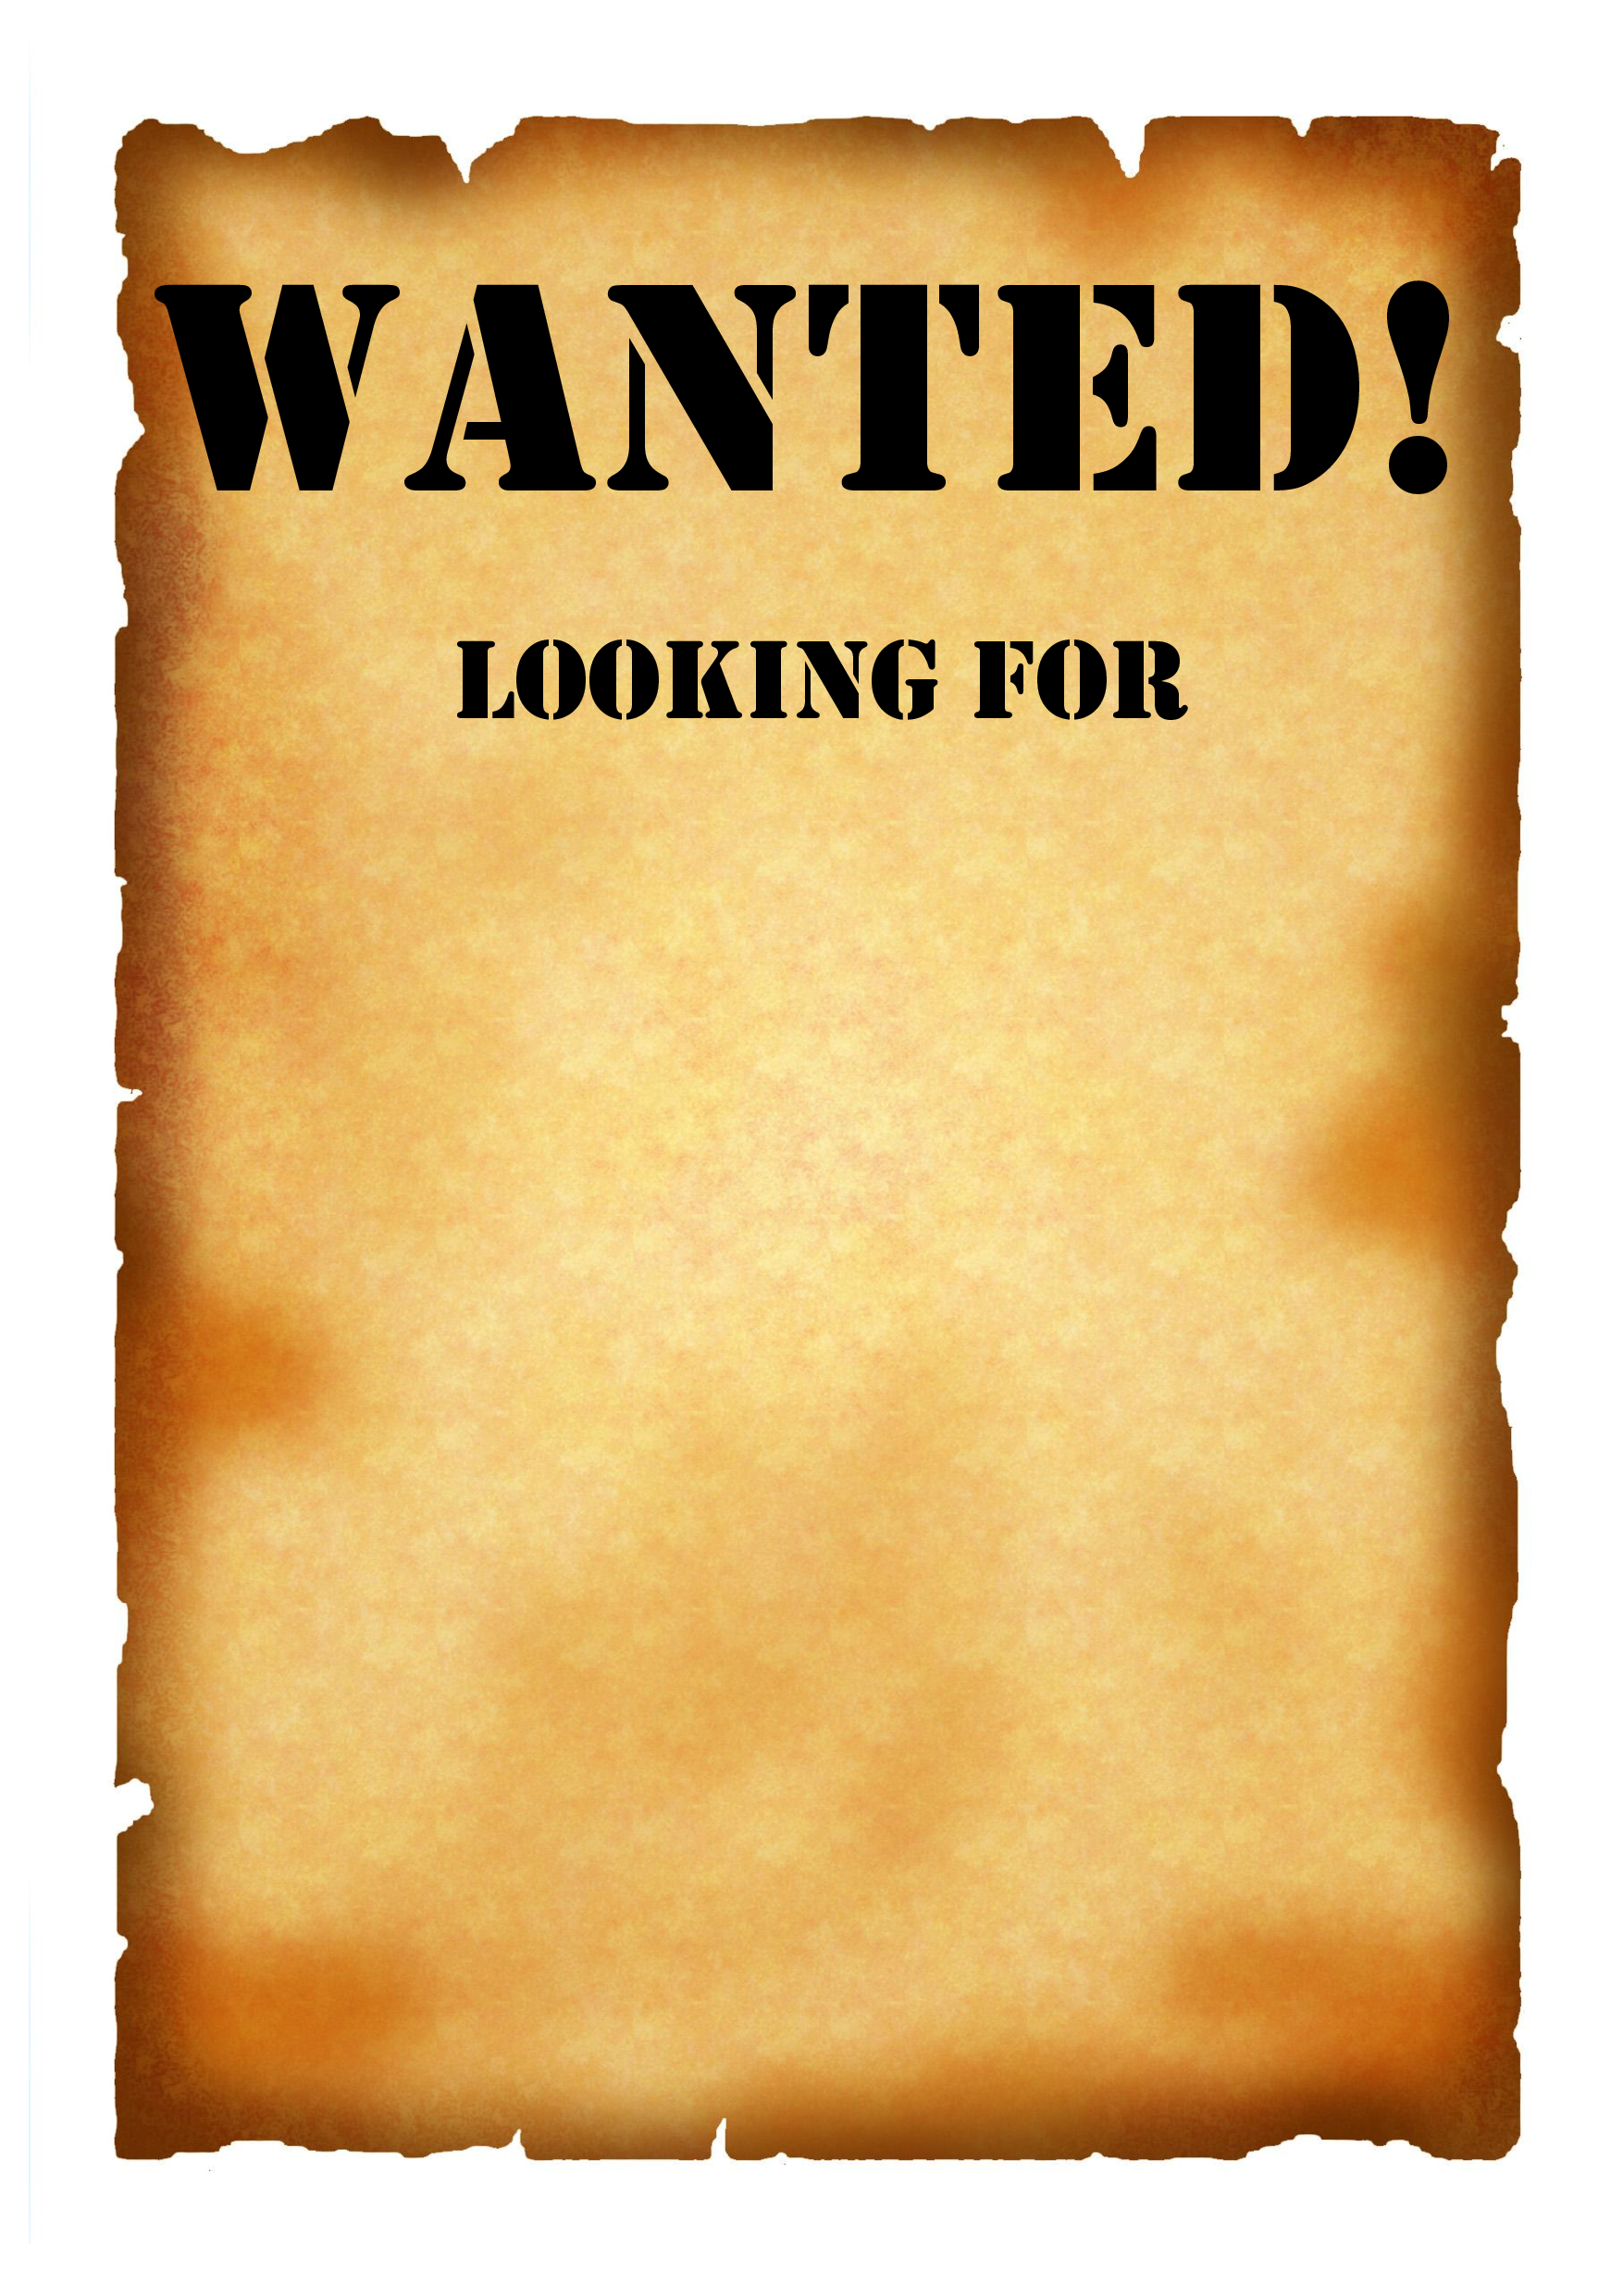 Wanted Poster by David Melgar Infographic